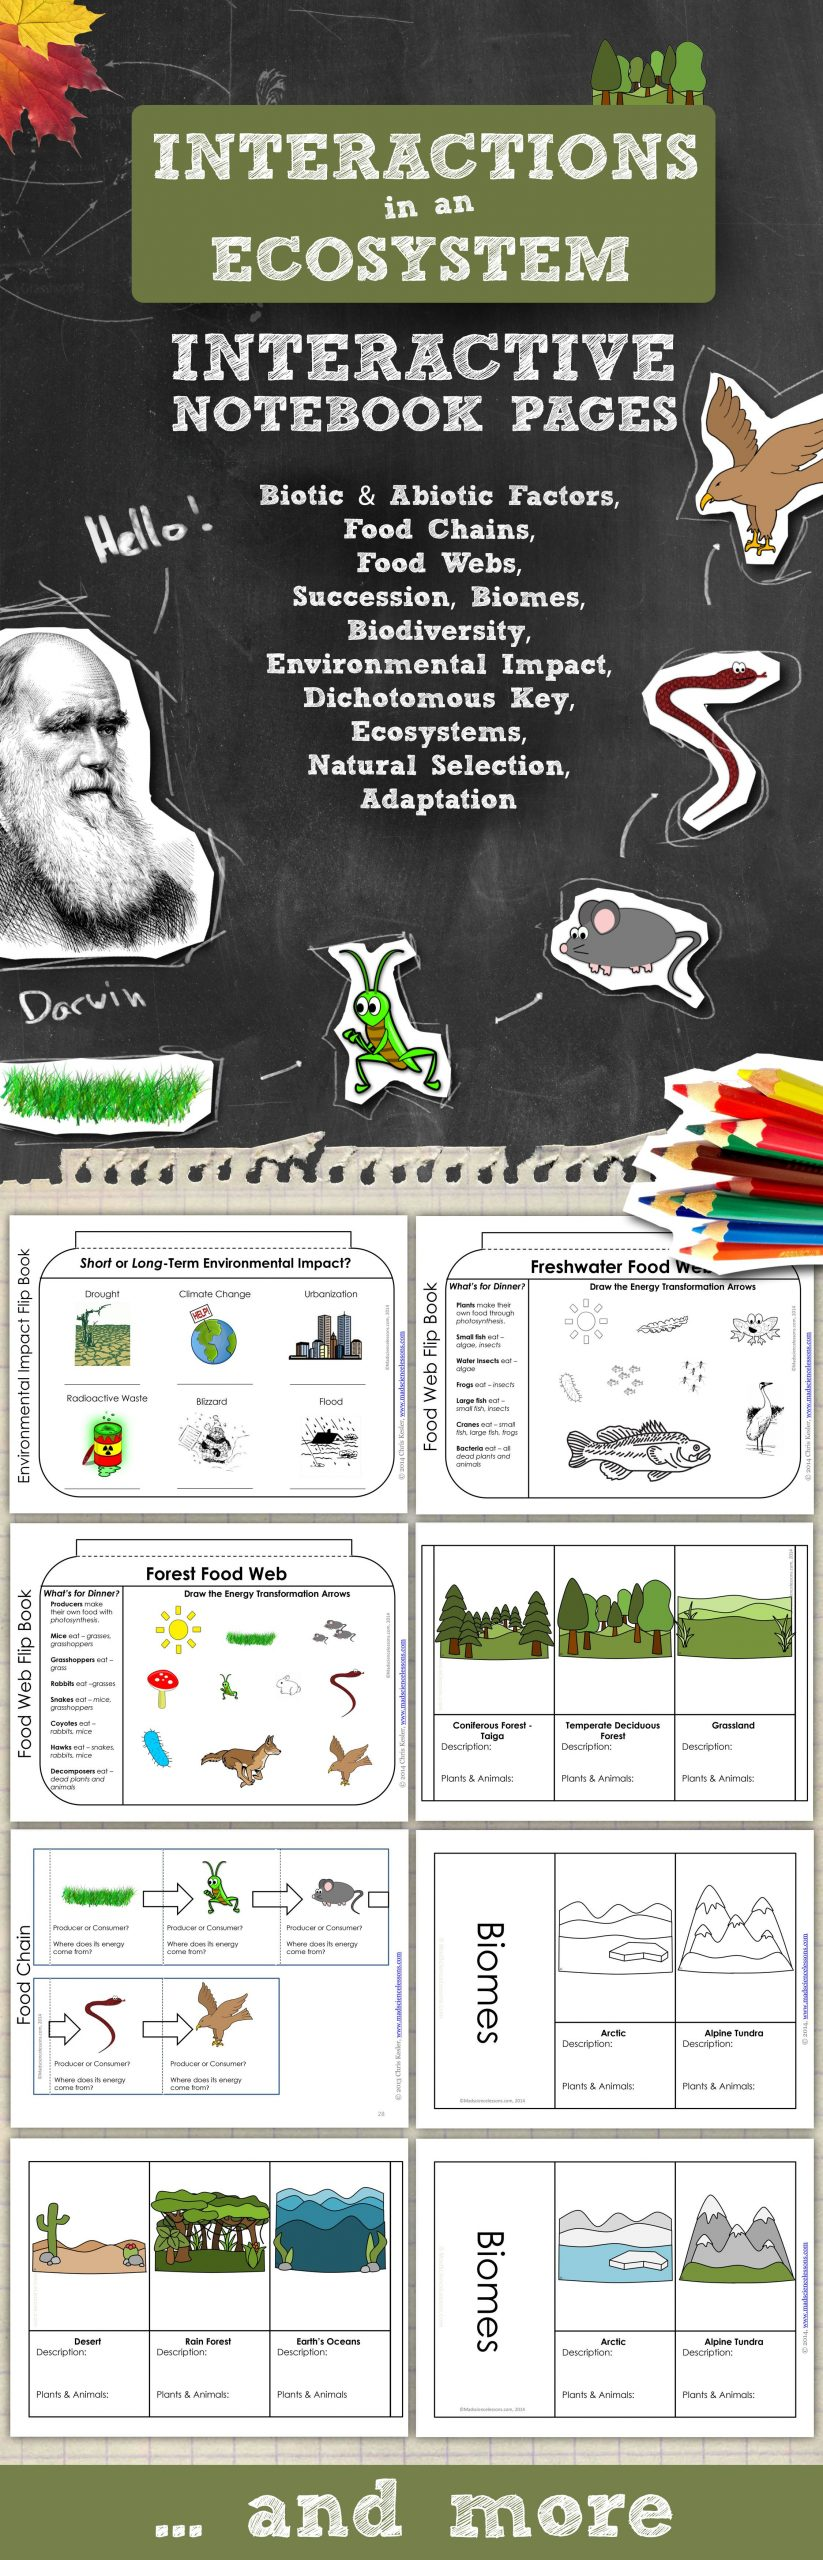 Darwin039s Natural Selection Worksheet Answers Ecosystems Interactive Notebook Pages